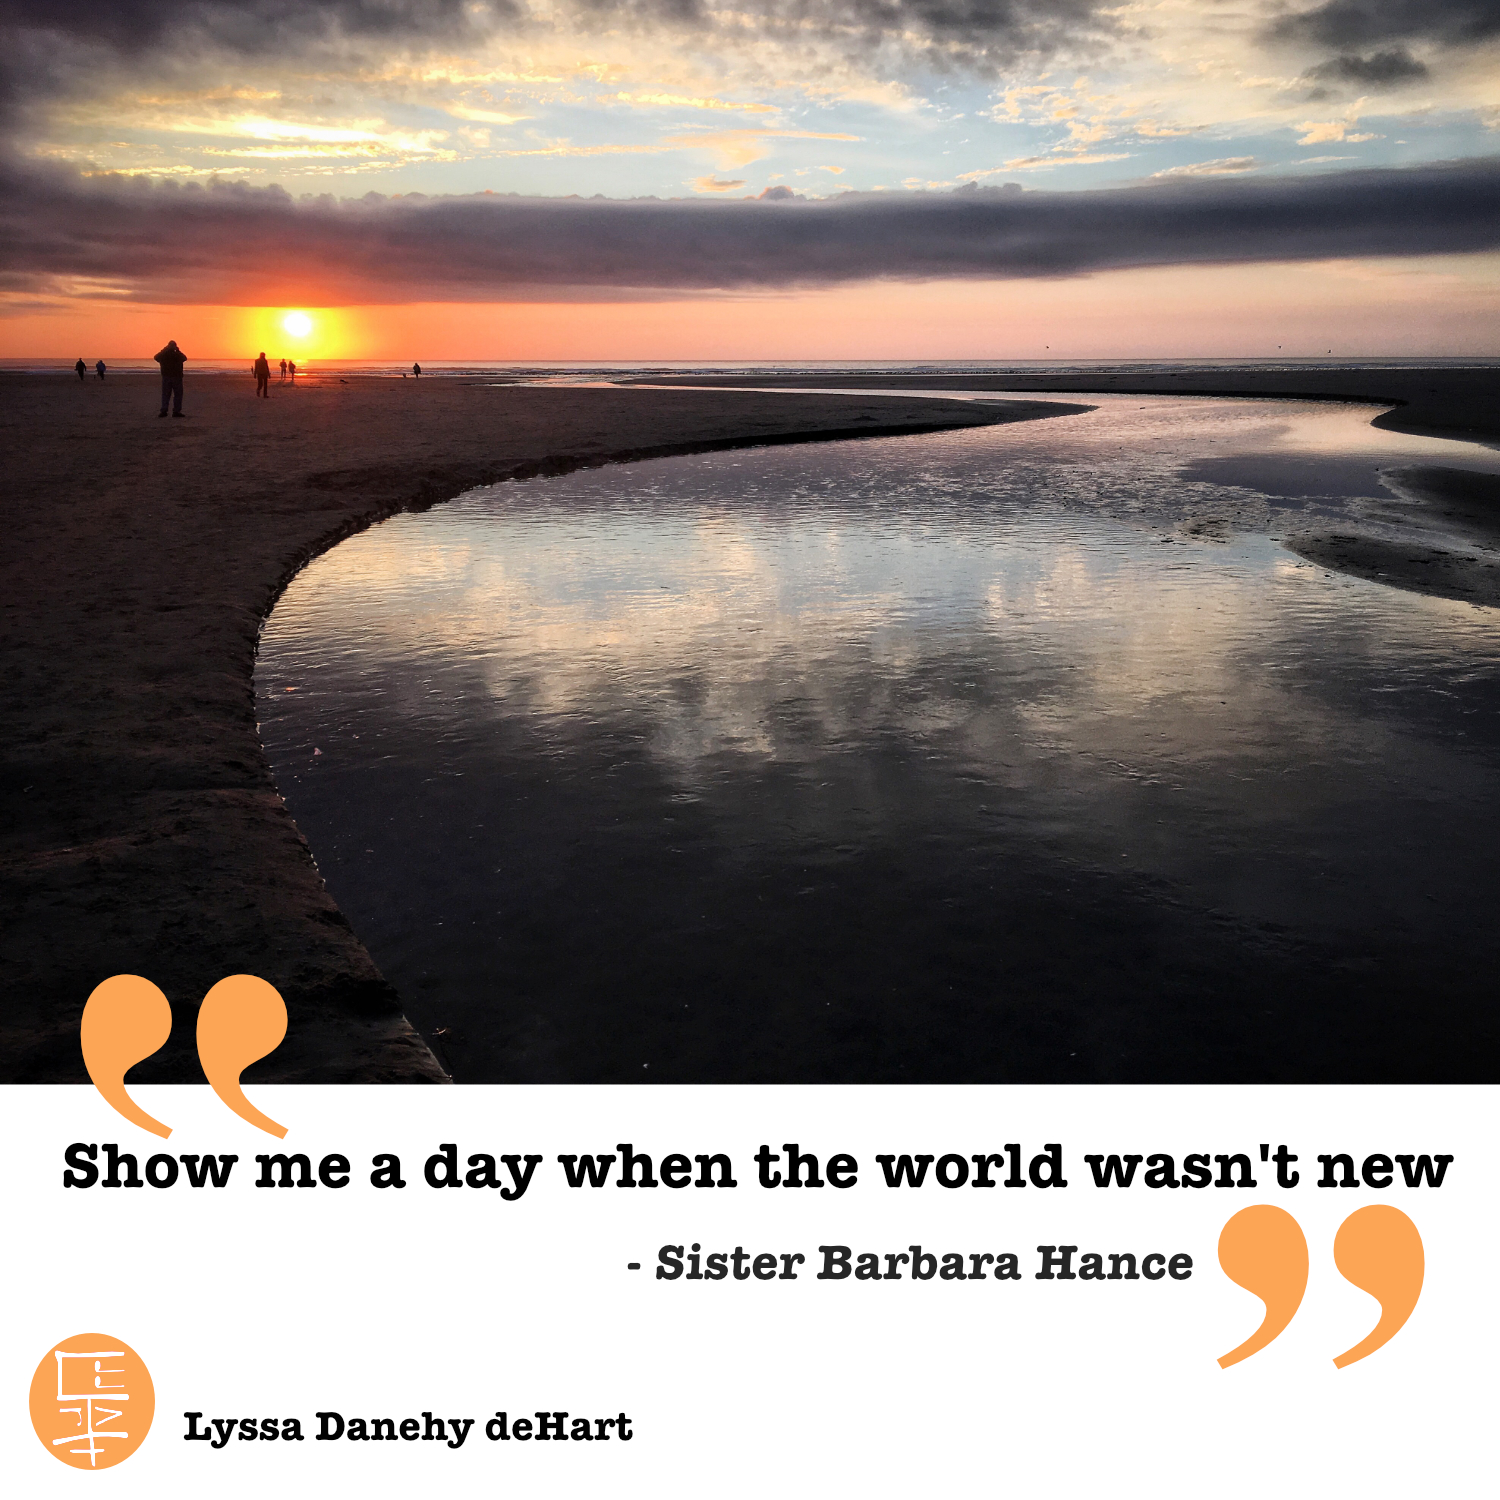 What will you do with your brand new day